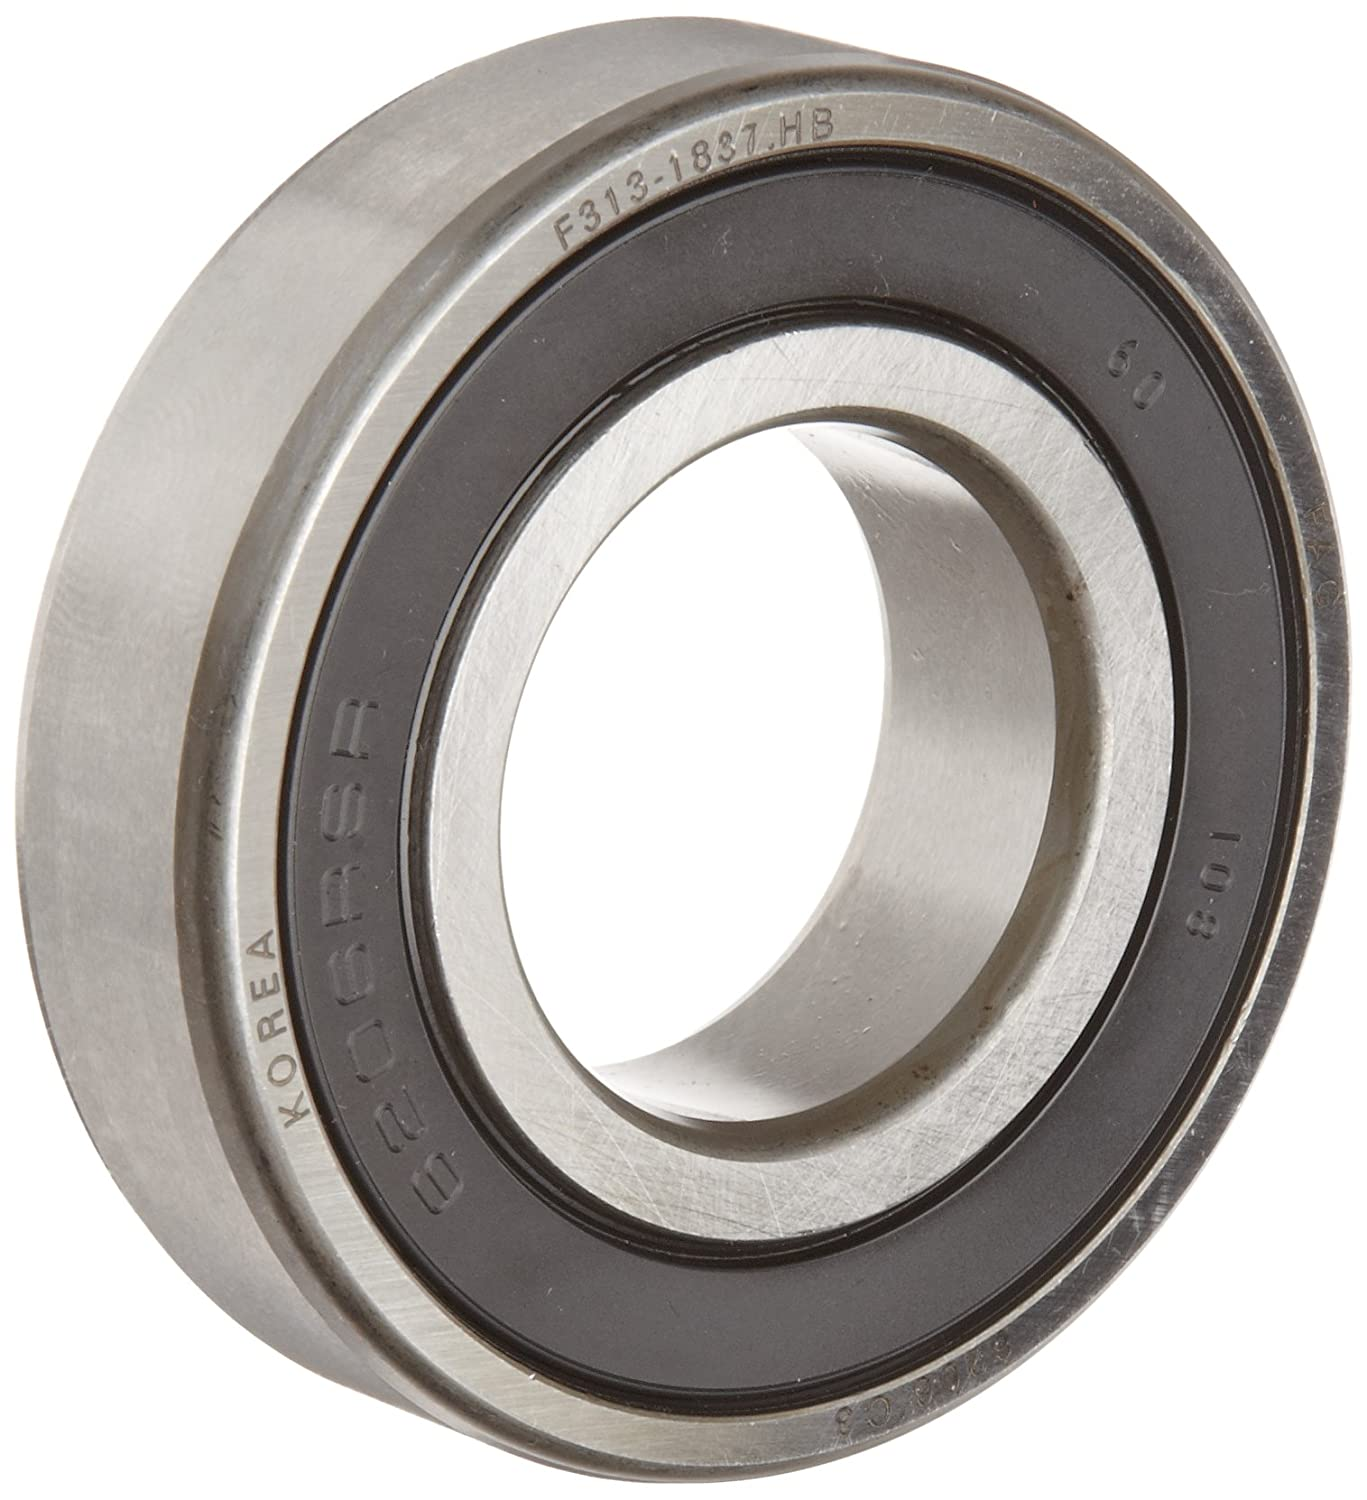 6004-2RS FAG Ball Bearing  20x42x12 mm 6004-2RSR